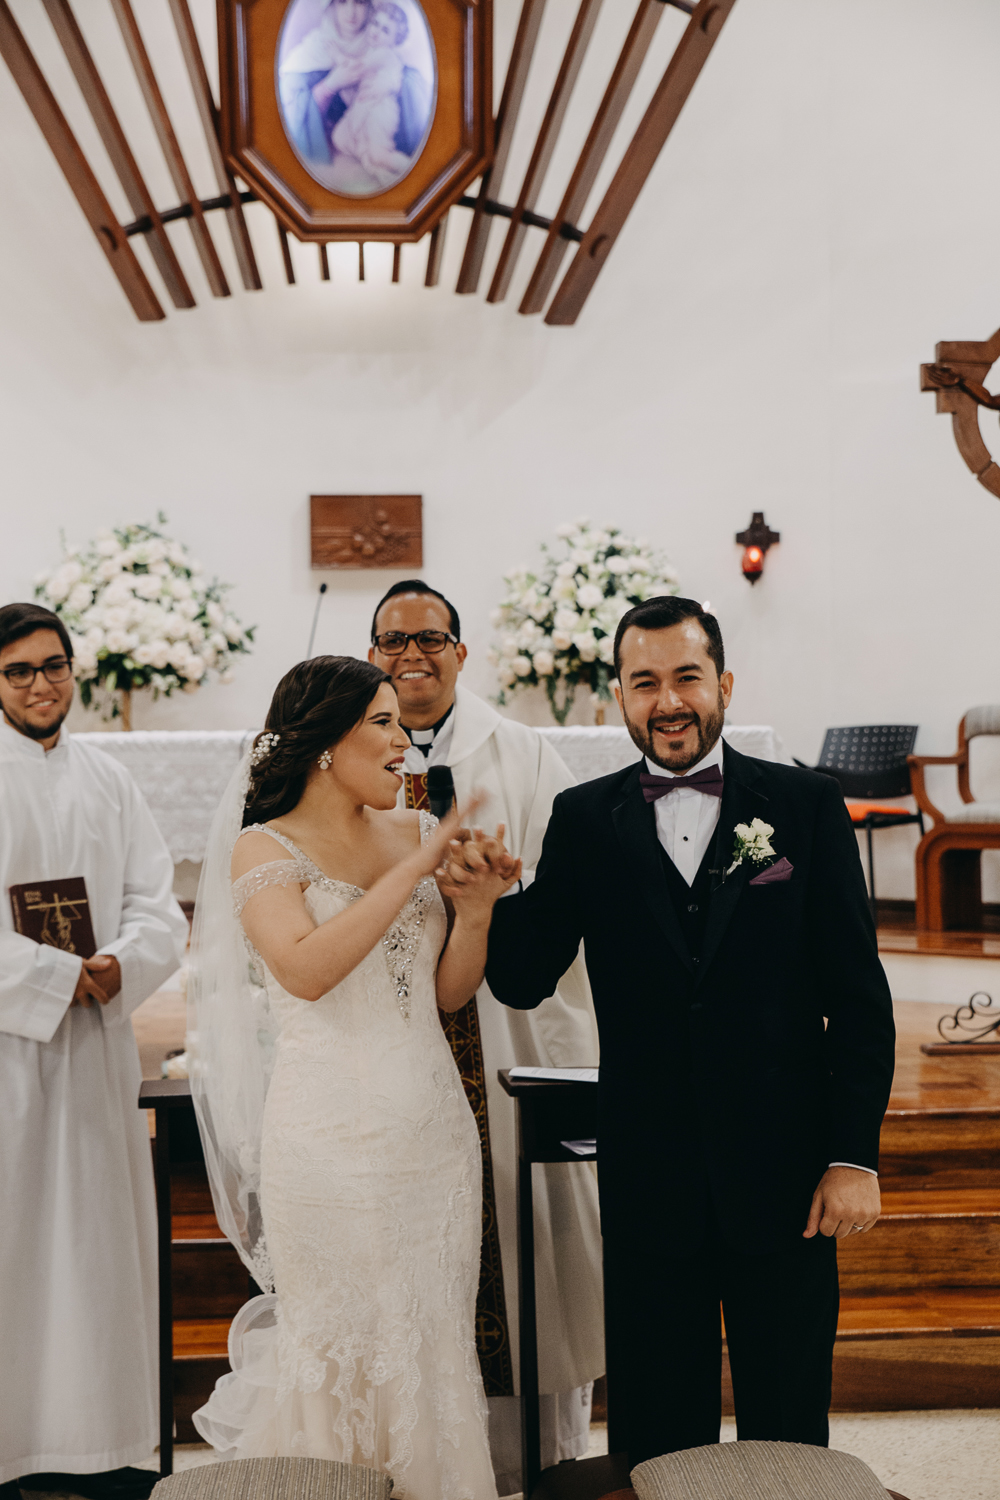 Michelle-Agurto-Fotografia-Bodas-Ecuador-Destination-Wedding-Photographer-Majito-Oscar-121.JPG